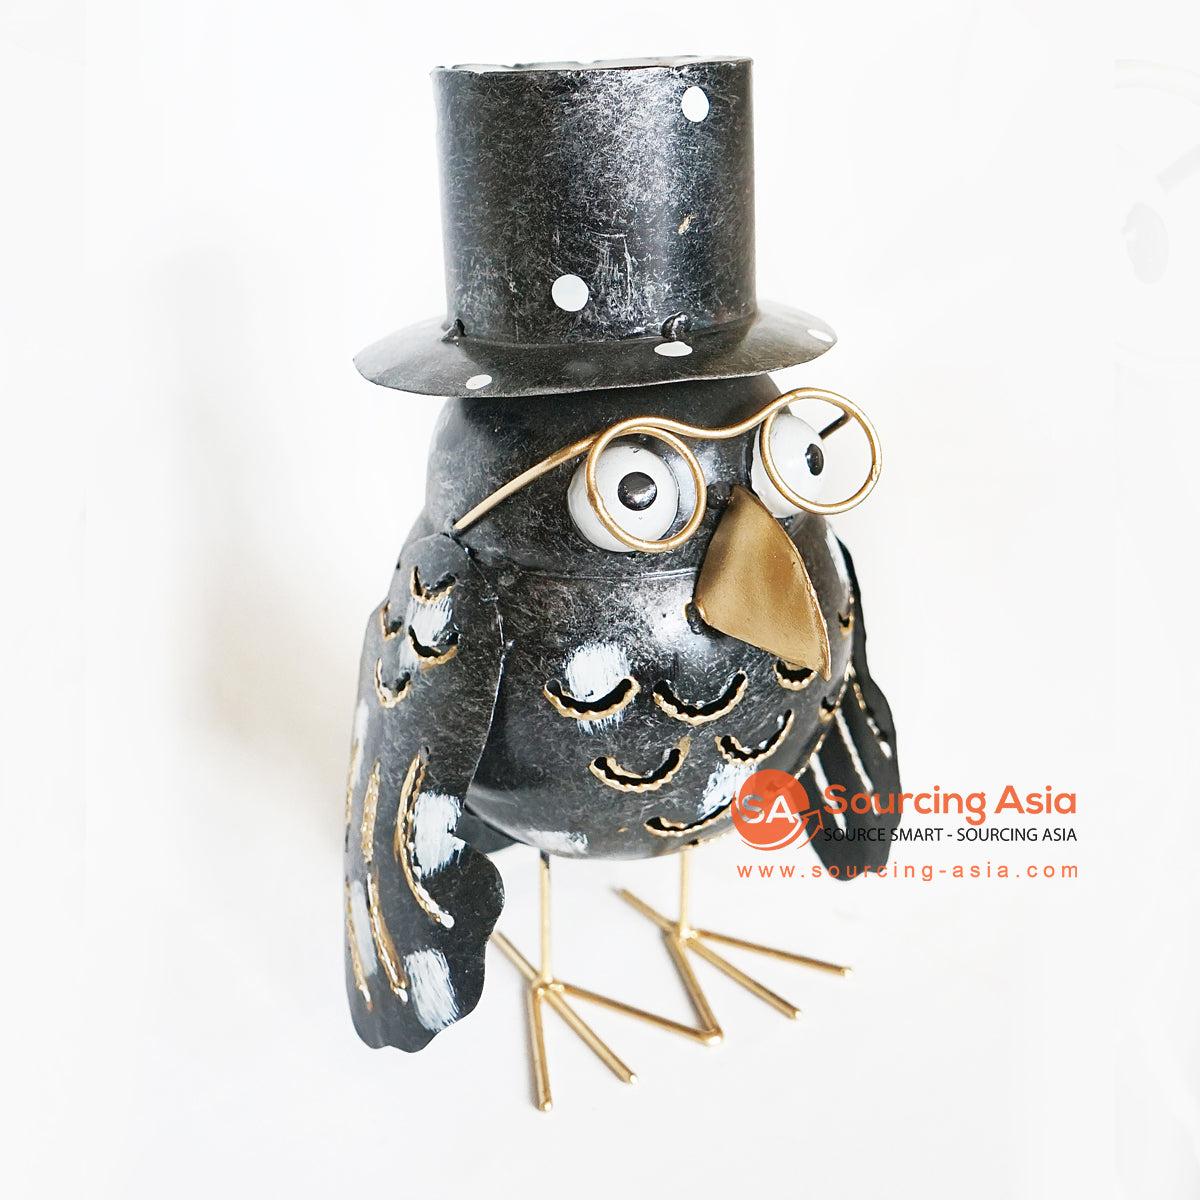 PEBC142 HAND PAINTED BLACK METAL RAVEN DECORATION WITH HAT AND GLASSES